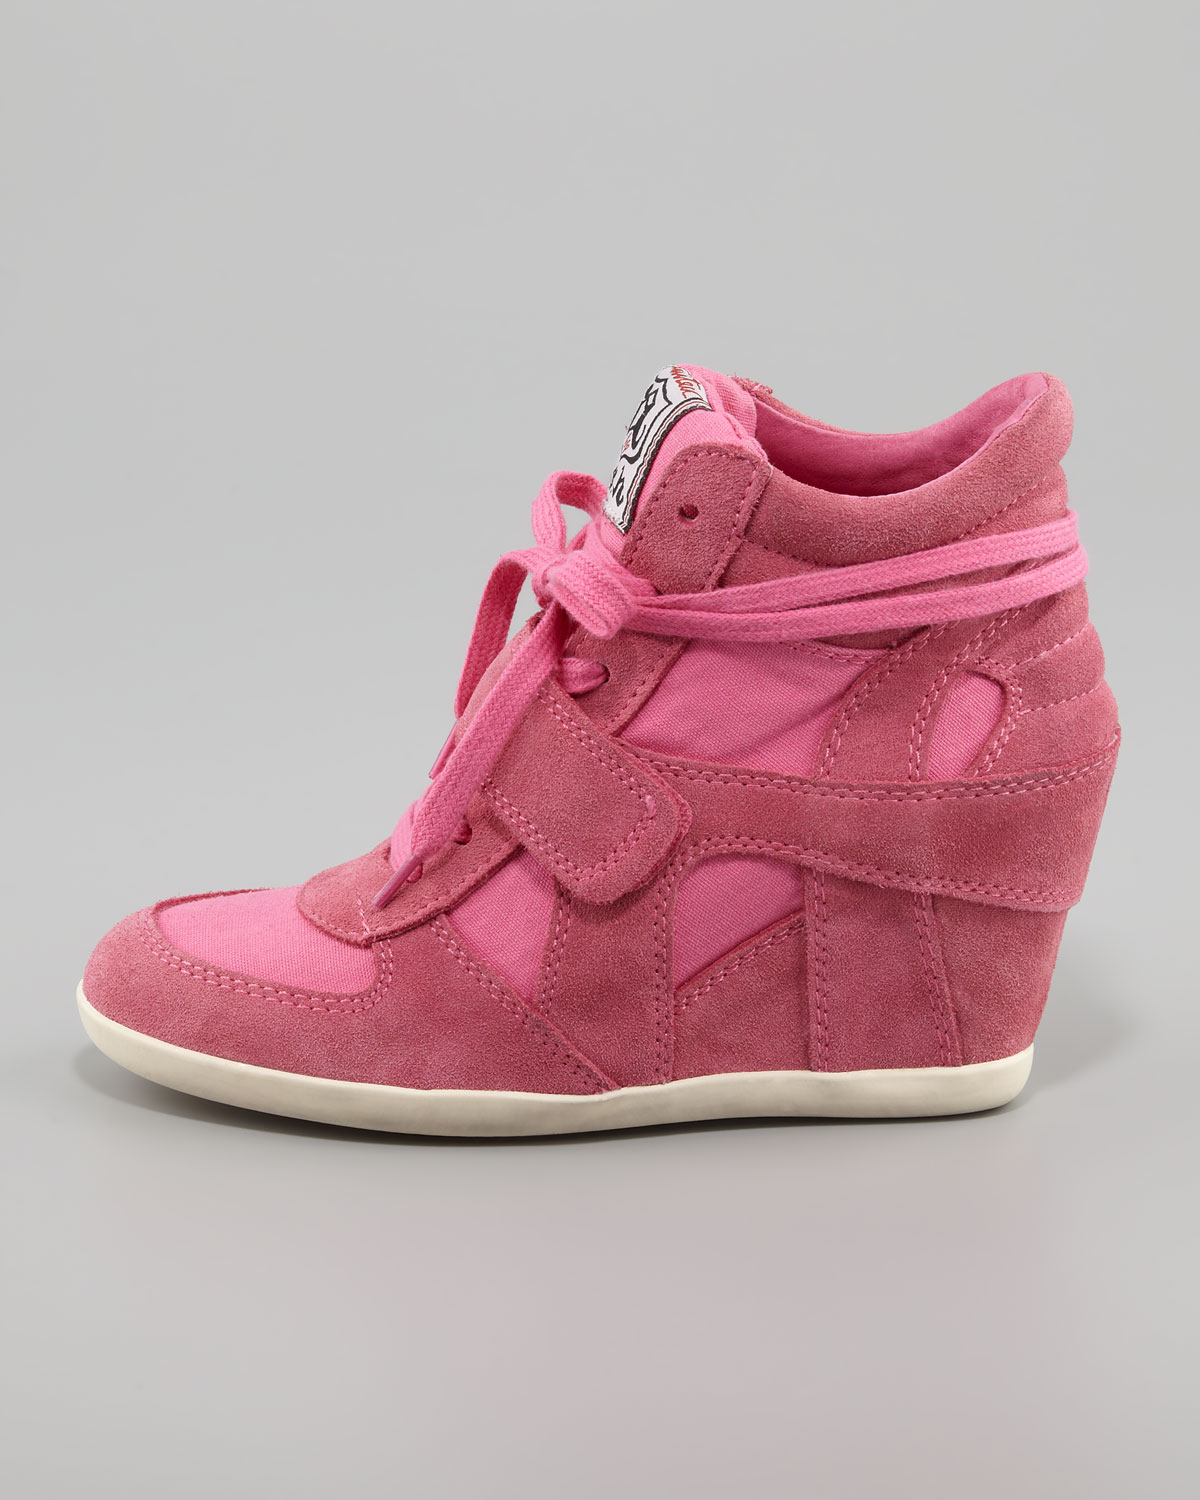 Lyst Ash Bowie Suede Canvas Wedge Sneaker In Pink